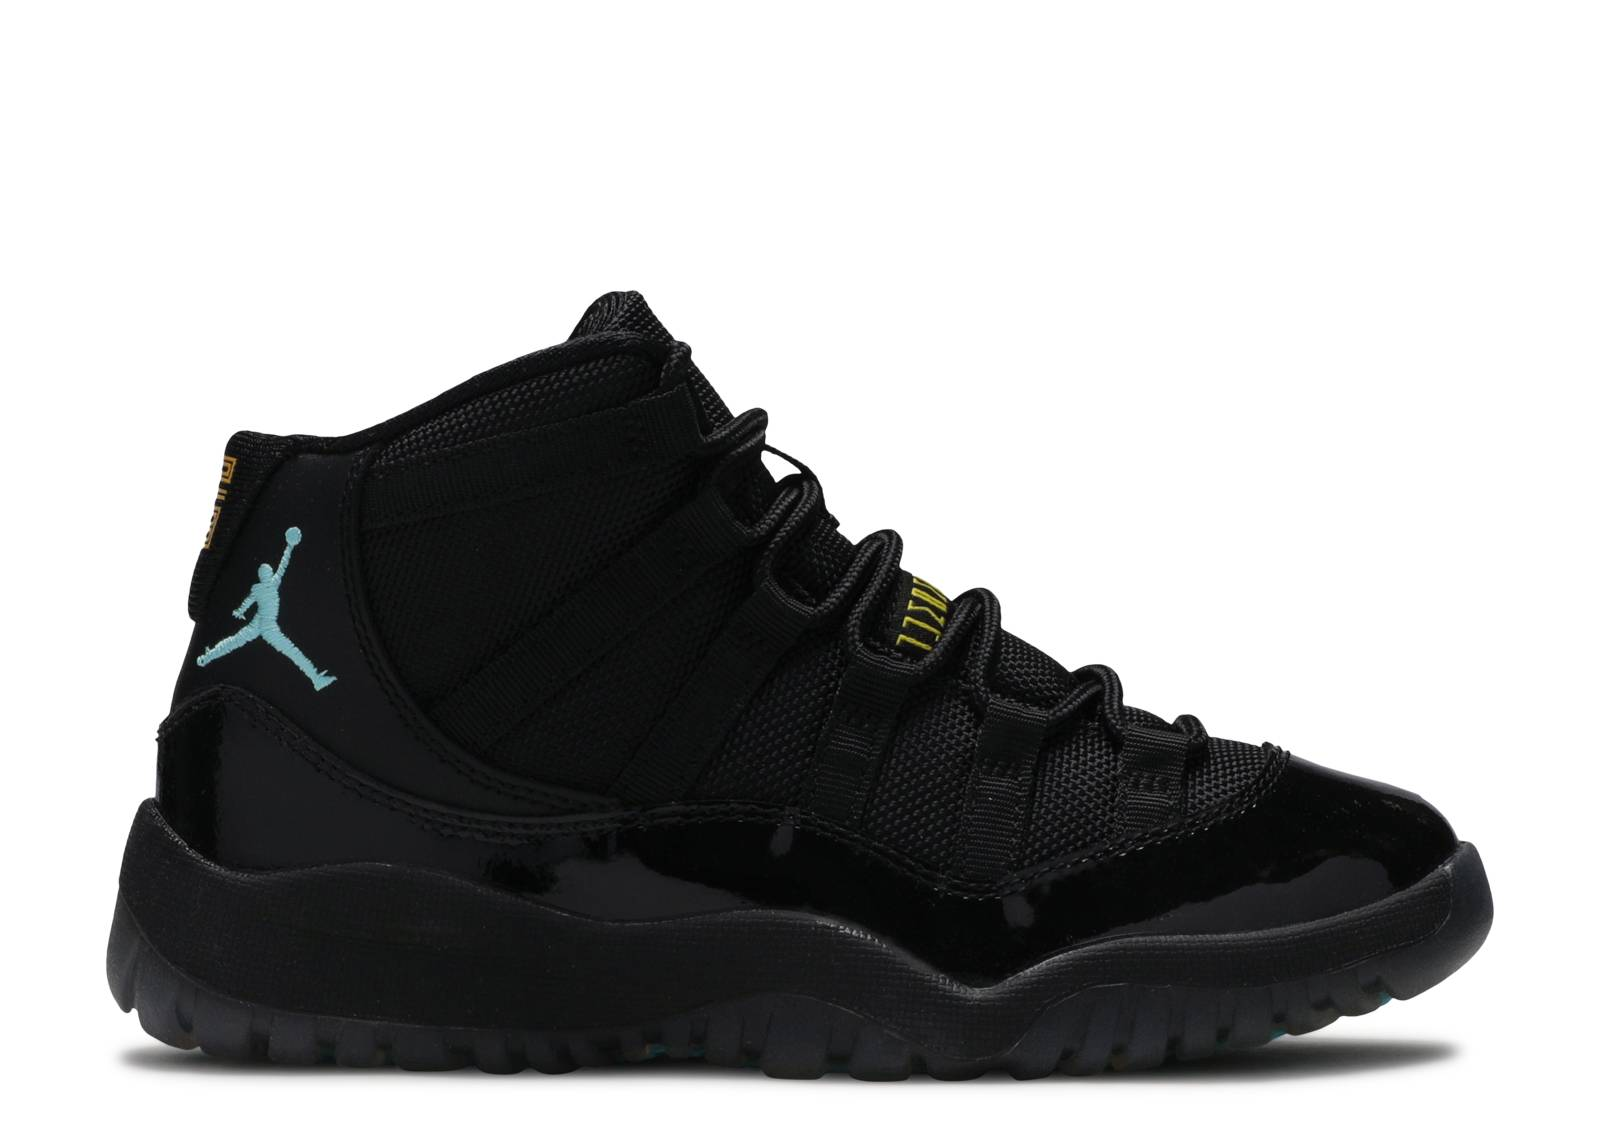 air jordan 11 retro / black/gamma blue-blck-vrsty mza